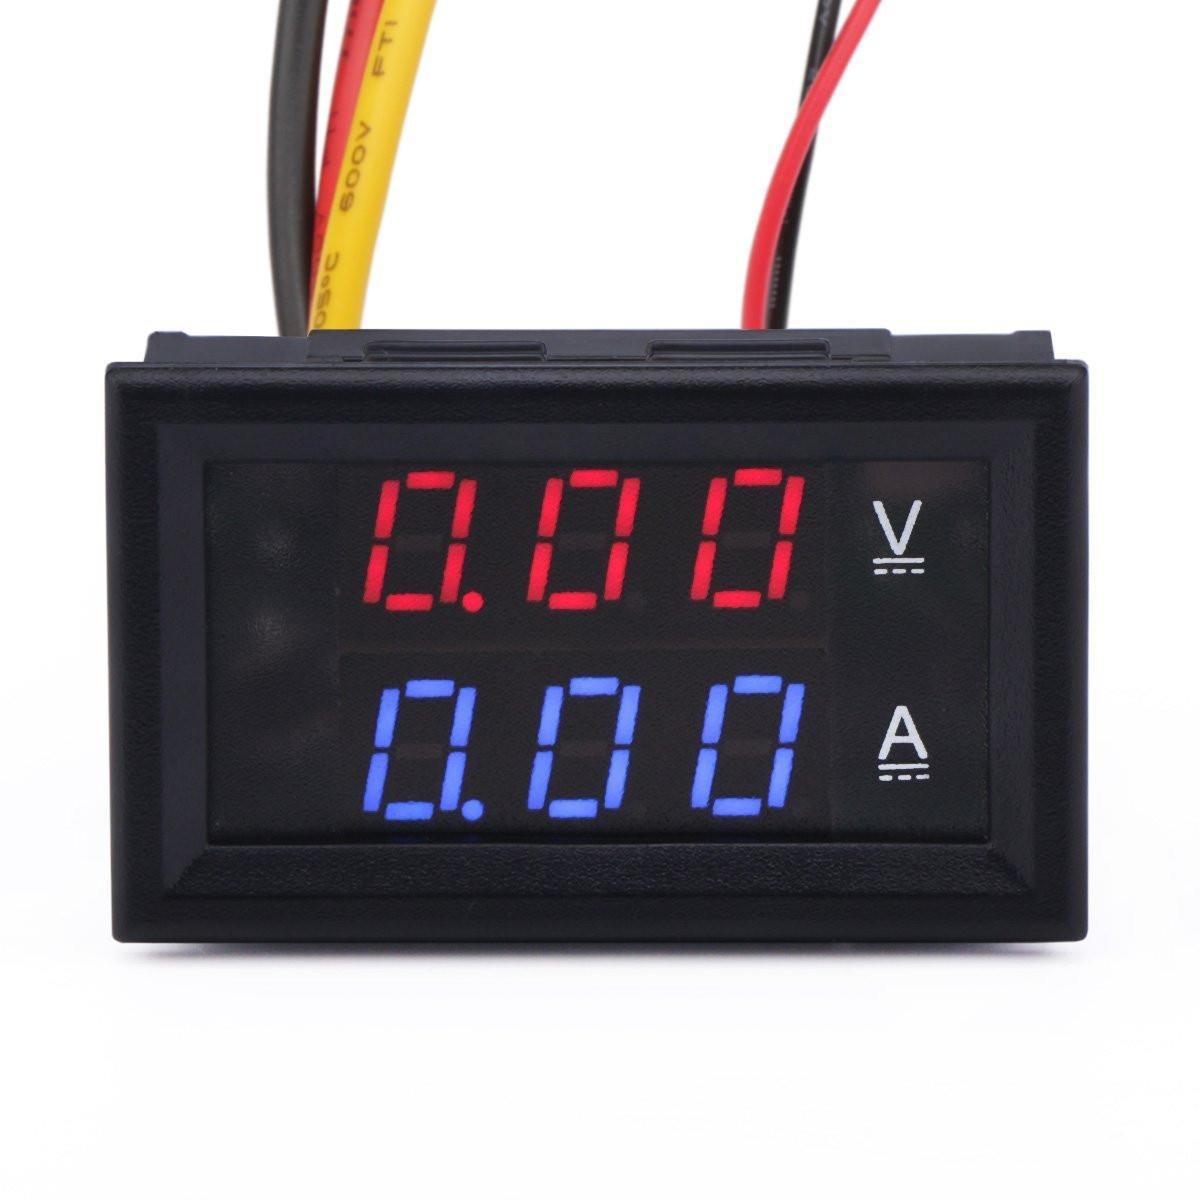 DC0~100V 10A voltage current meter with 0.28